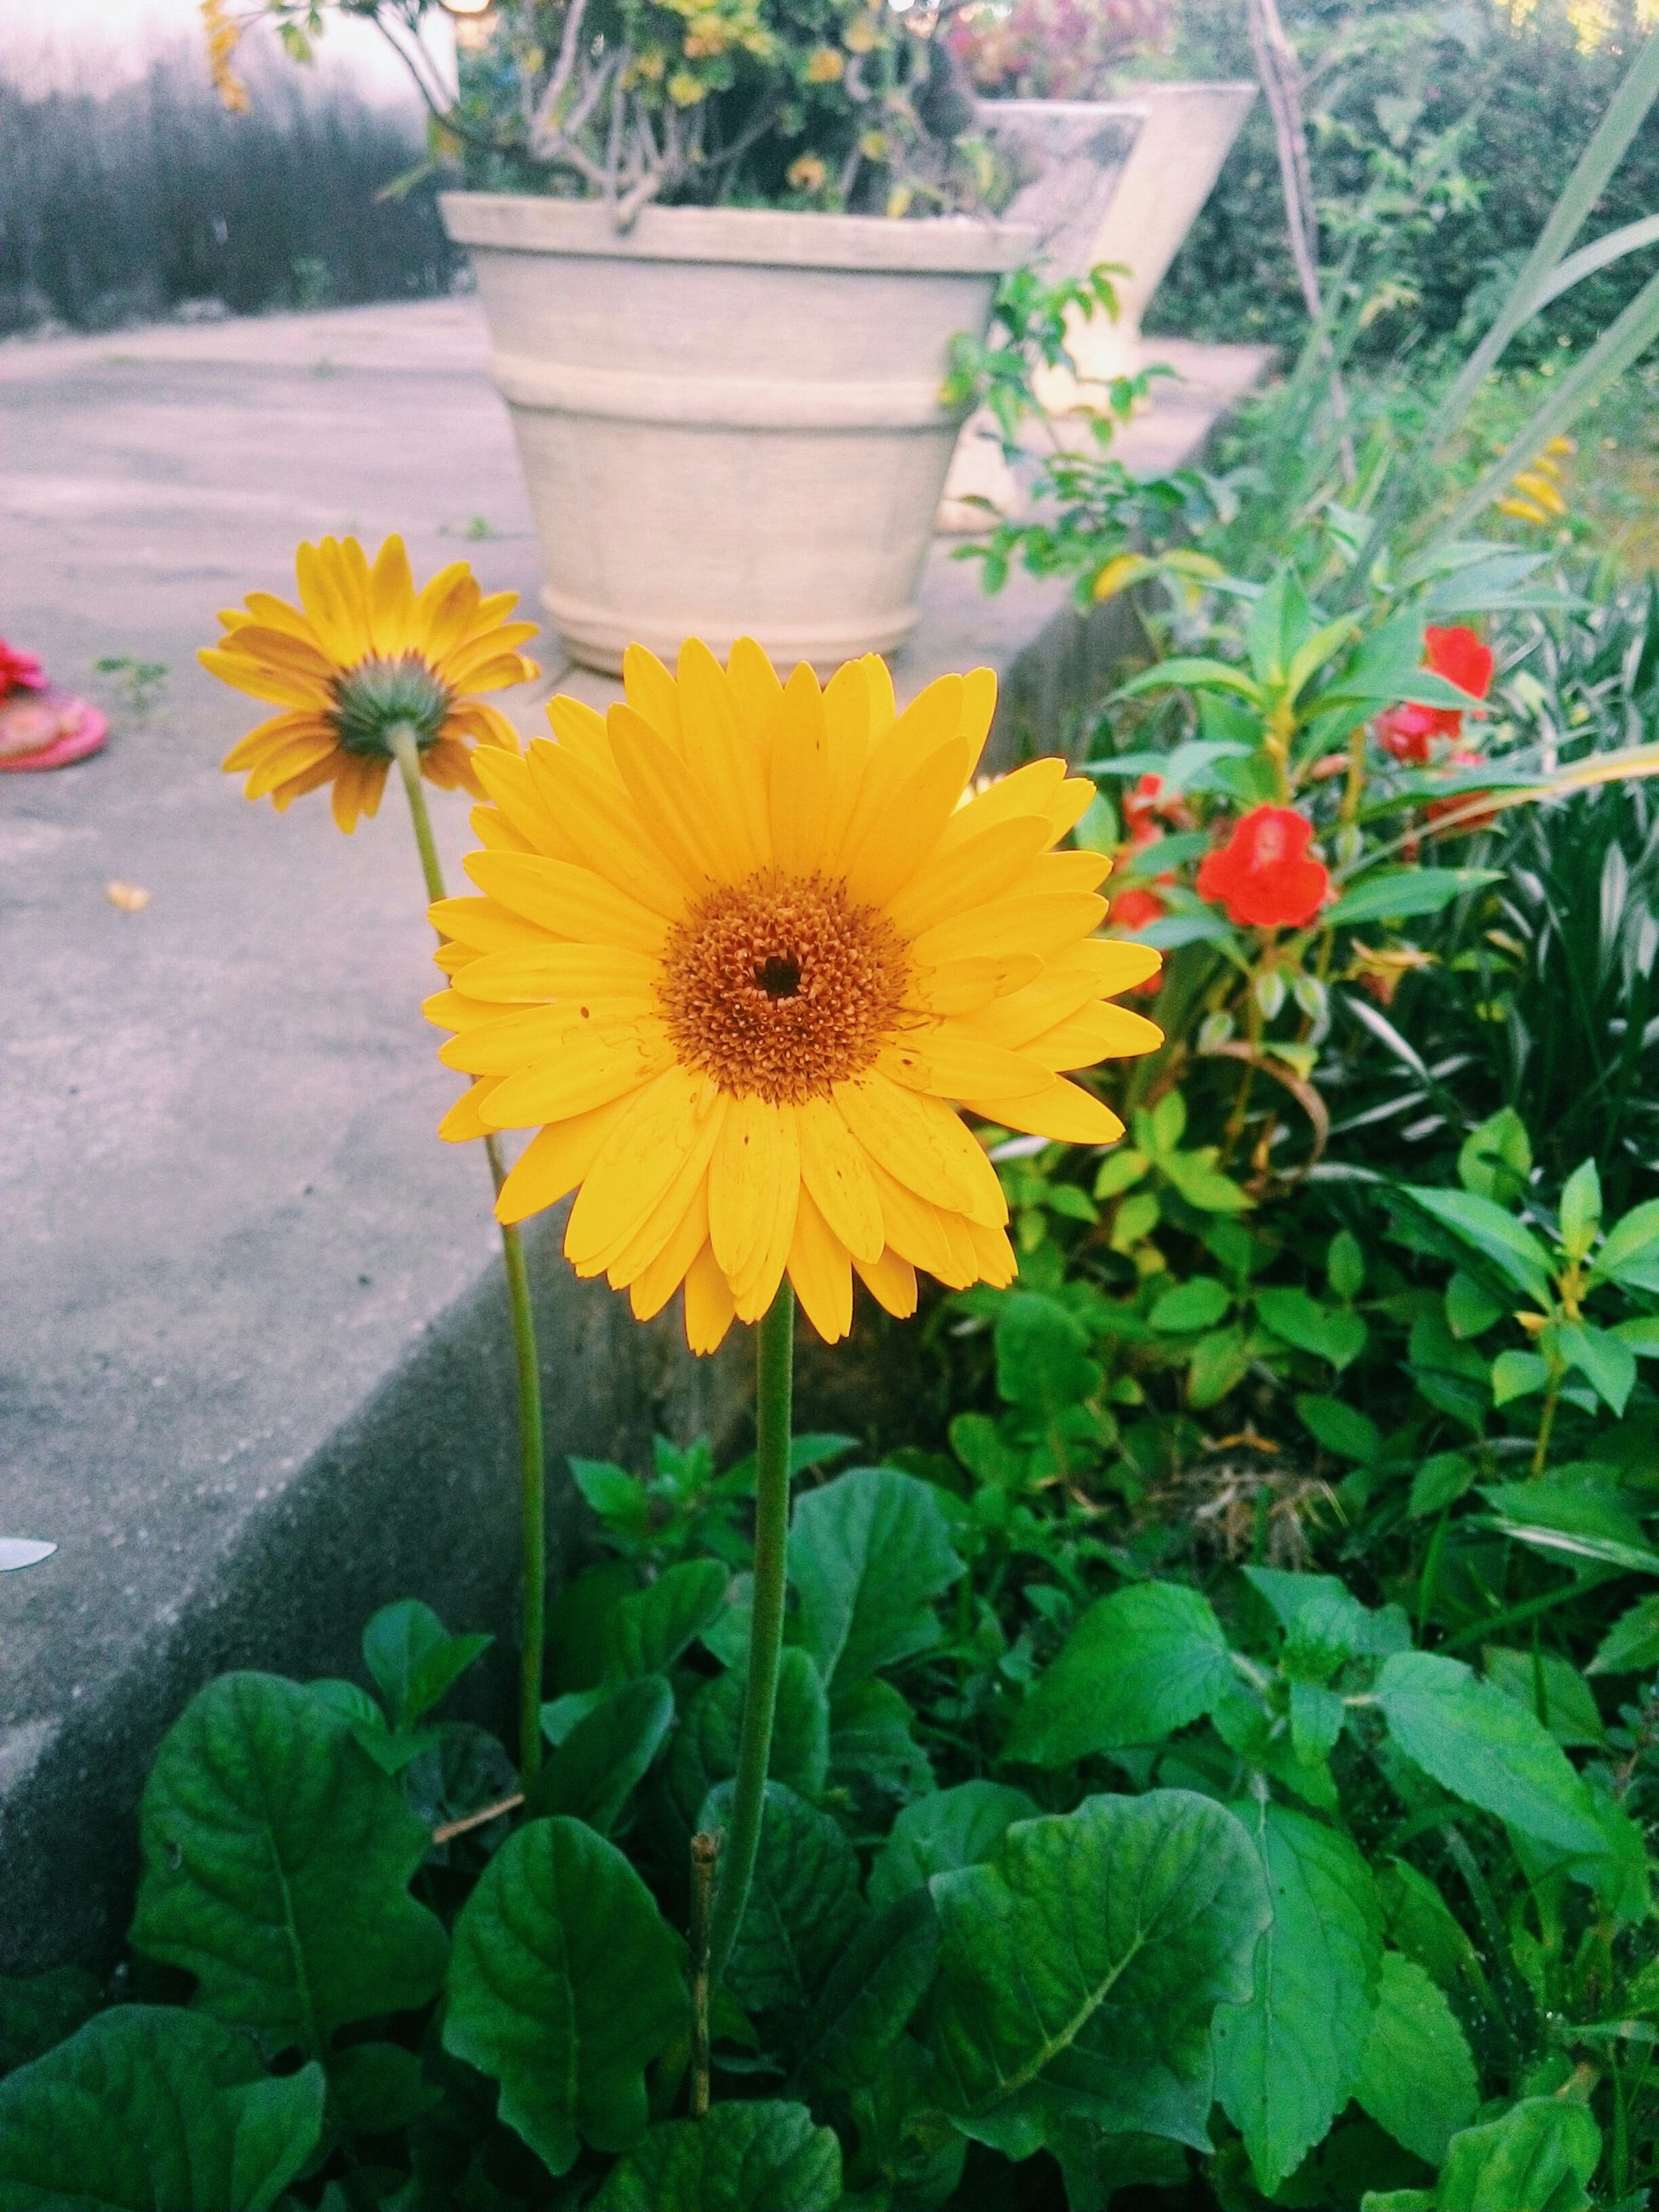 flower, petal, freshness, fragility, flower head, yellow, leaf, growth, plant, beauty in nature, blooming, high angle view, nature, in bloom, potted plant, green color, close-up, day, front or back yard, pollen